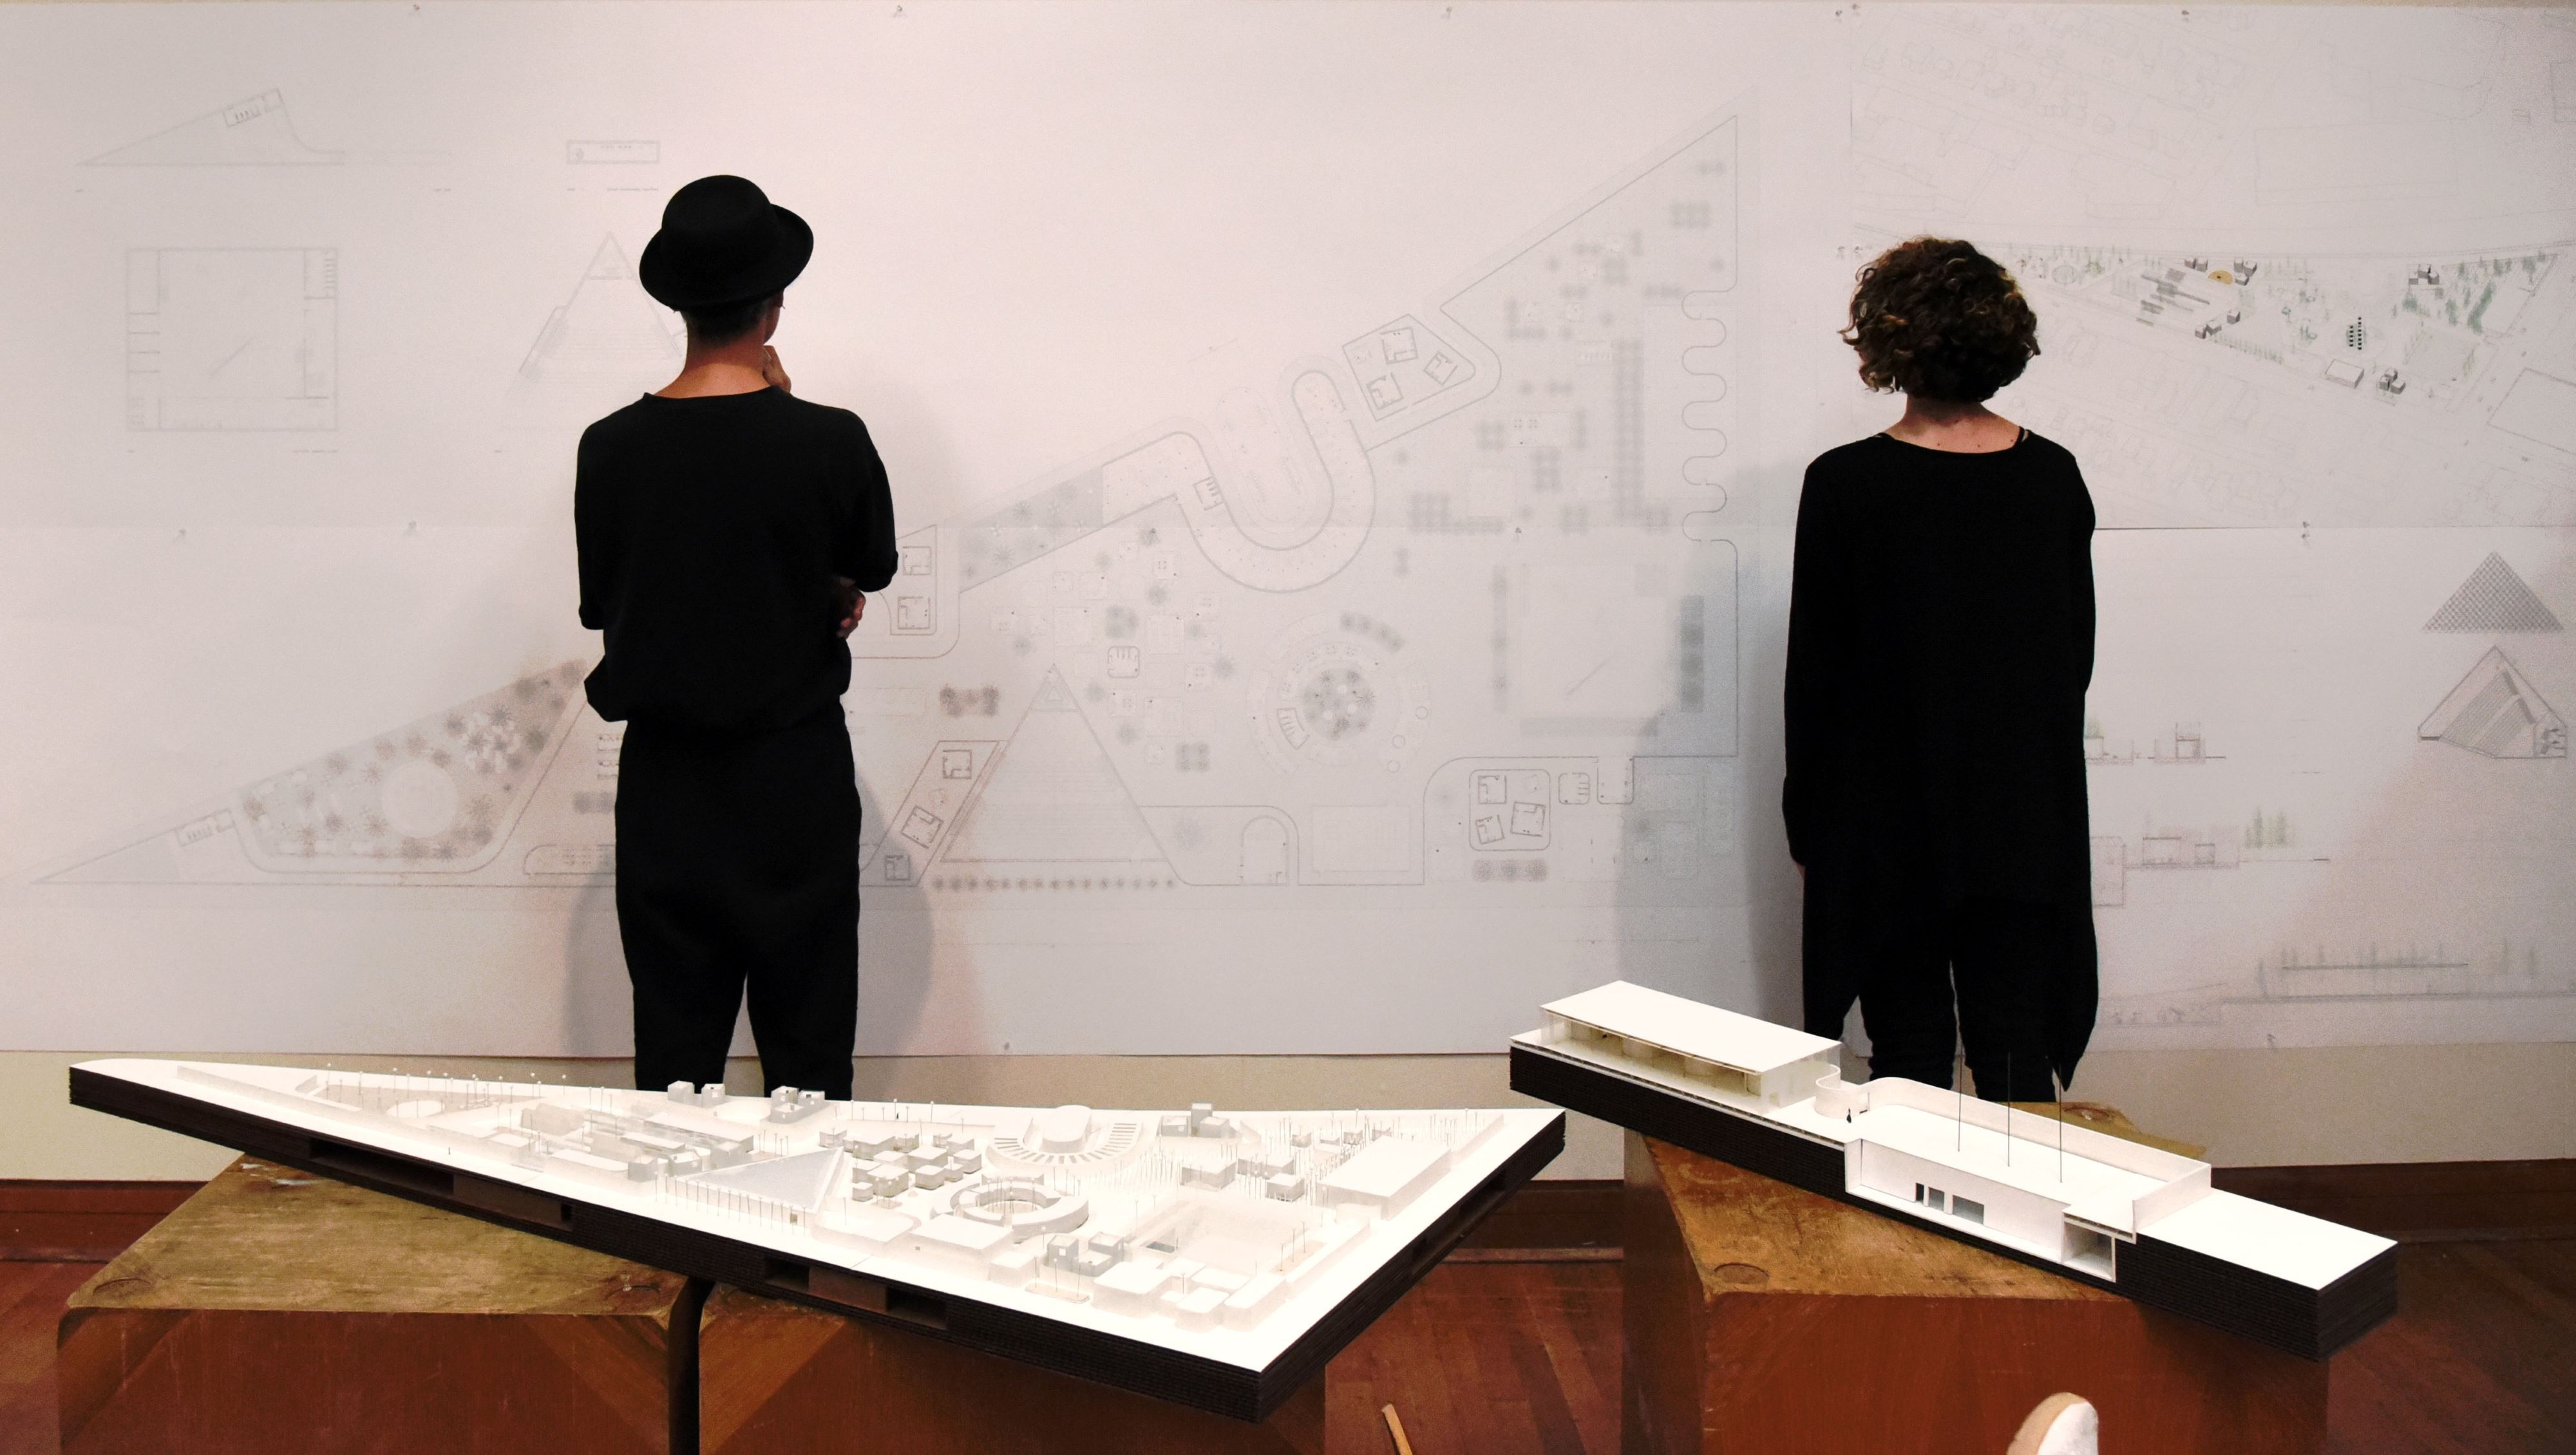 Two students in black looking at a wall of drawings during final review, foregrounded with a physical model